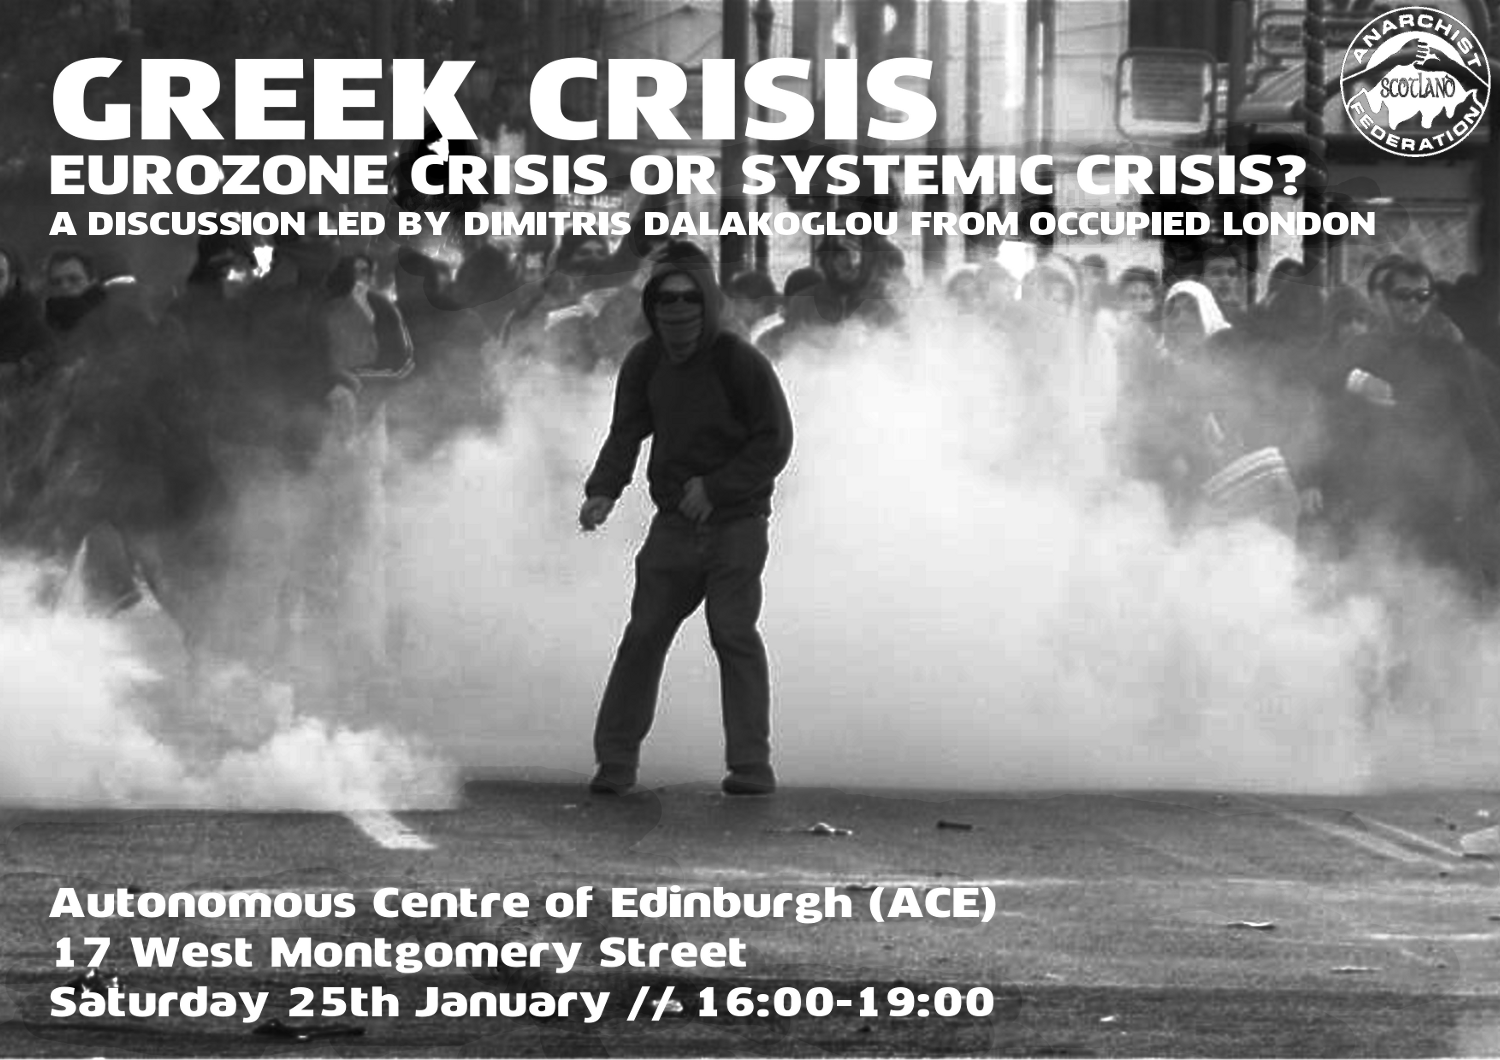 Greek crisis or systemic crisis, Dimitris Dalakoglou